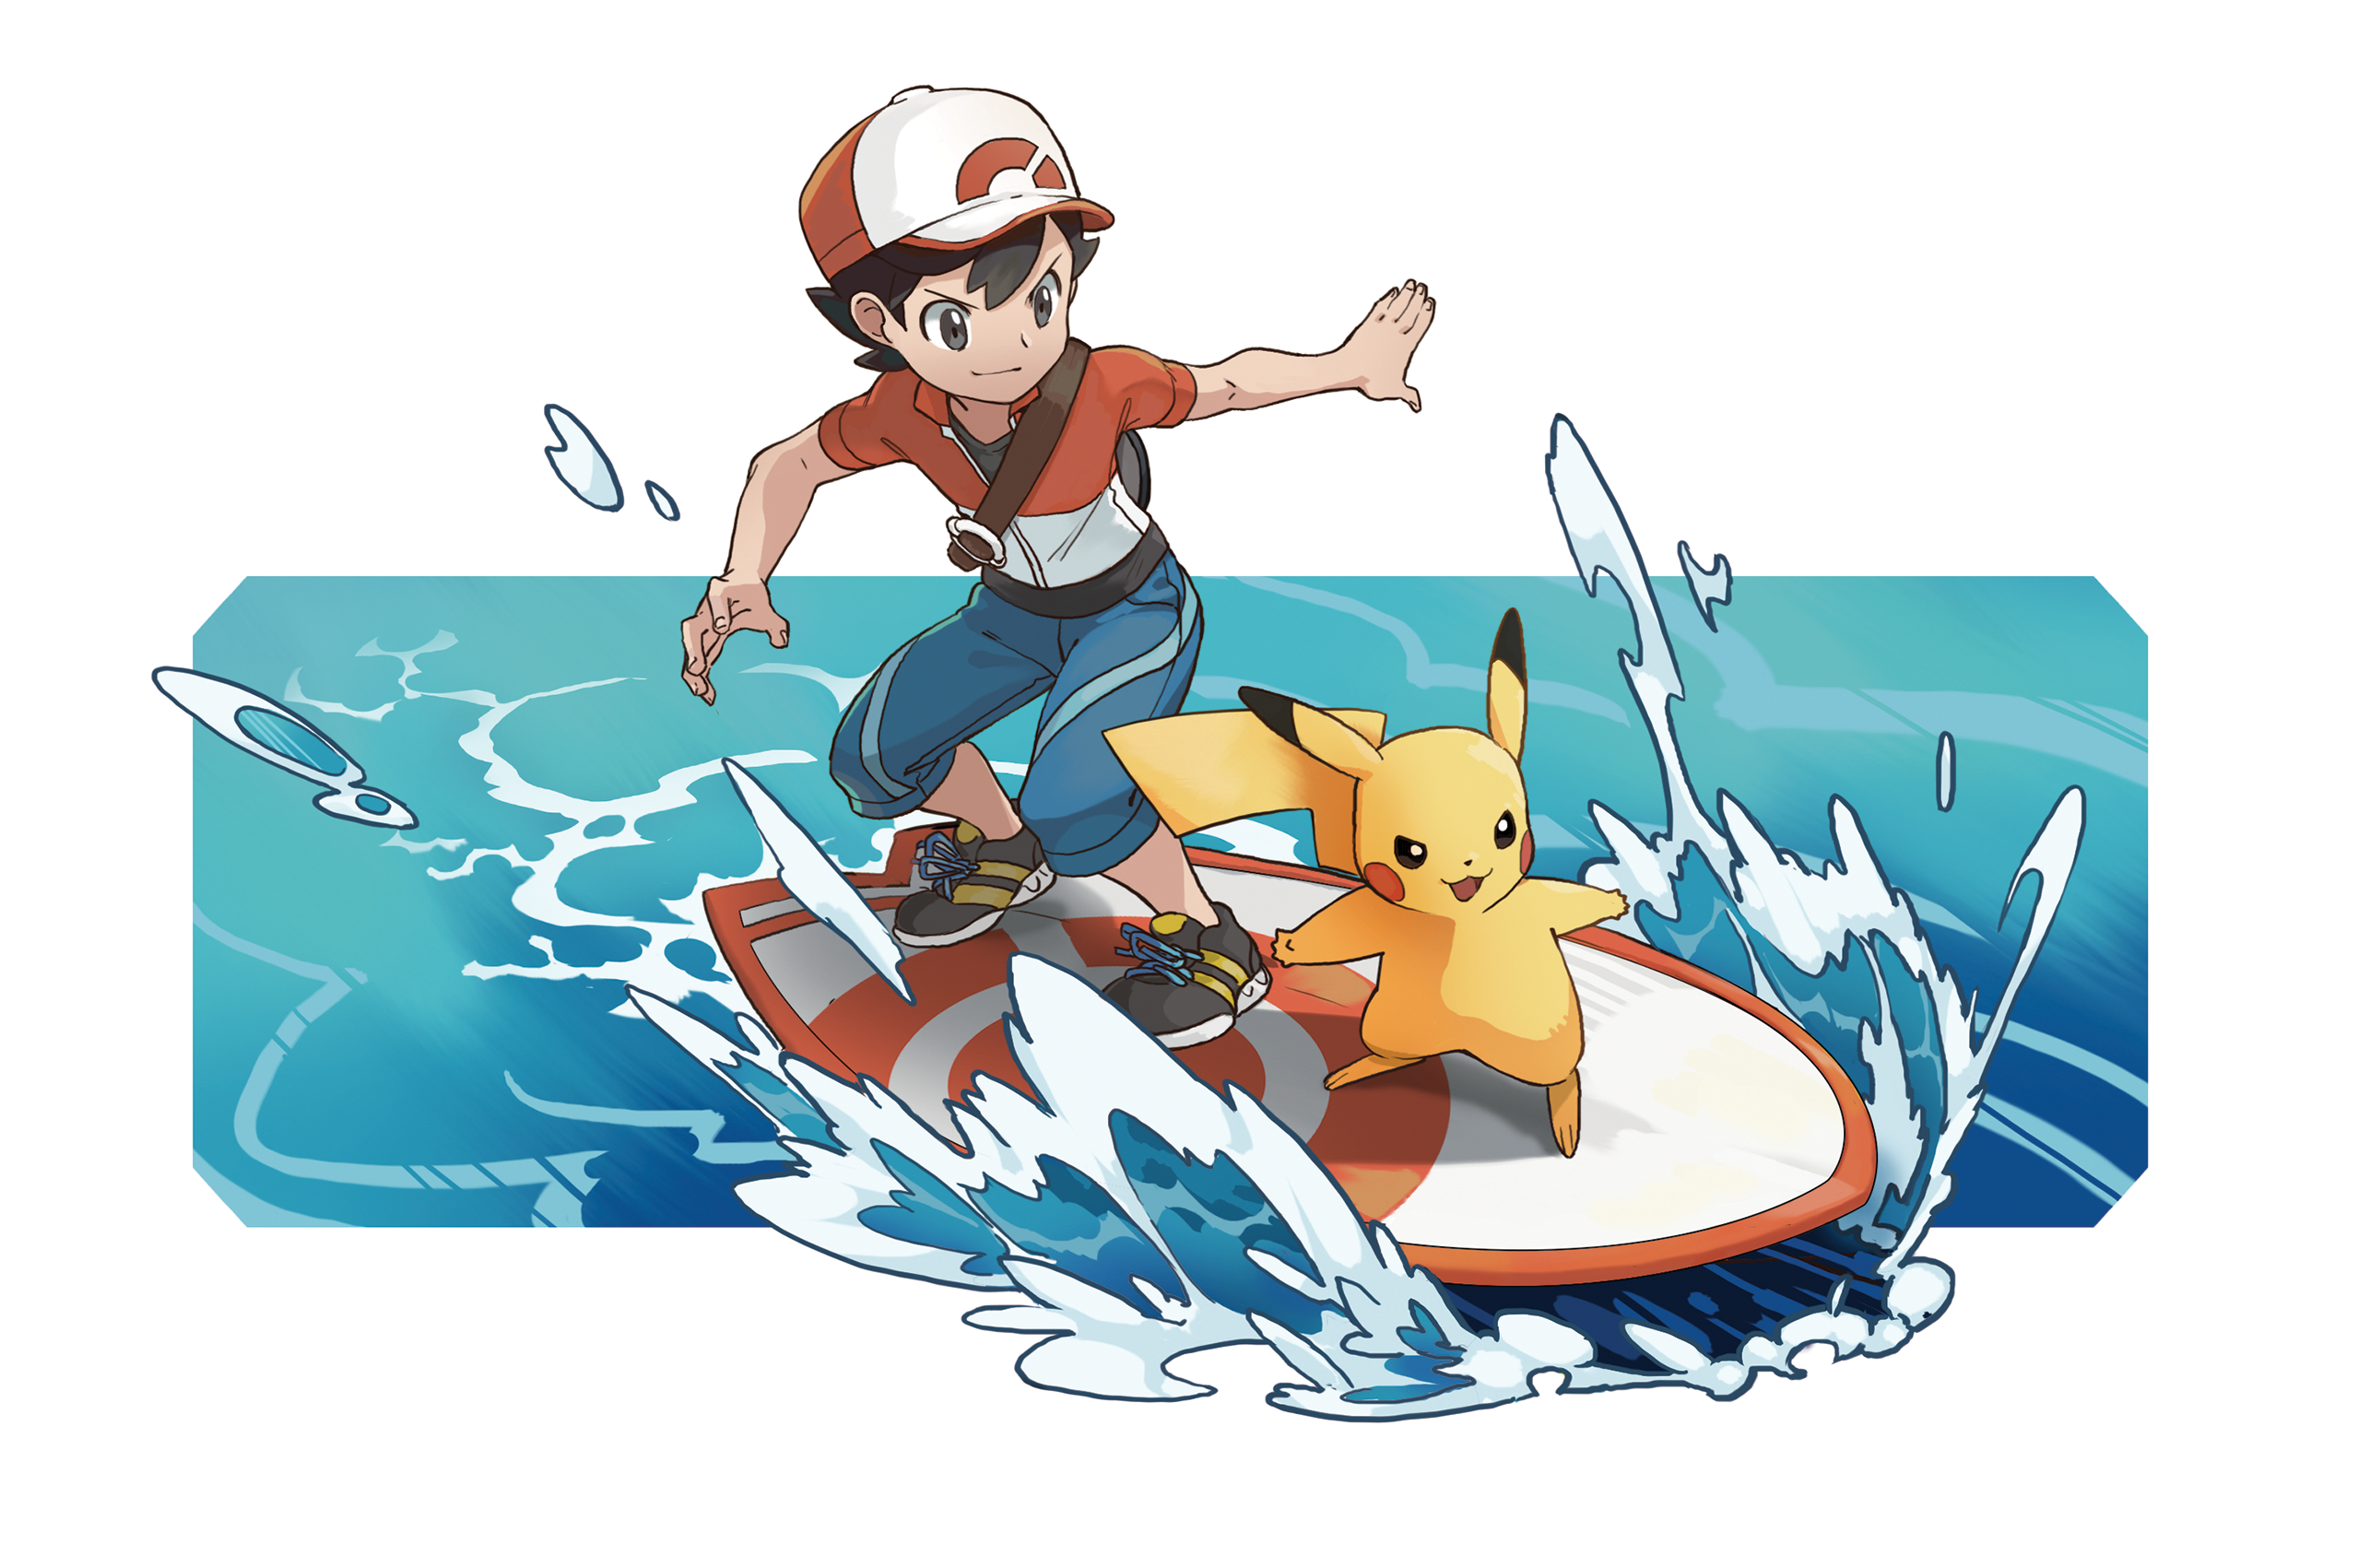 Pokemon Let S Go Pikachu And Let S Go Eevee Limited